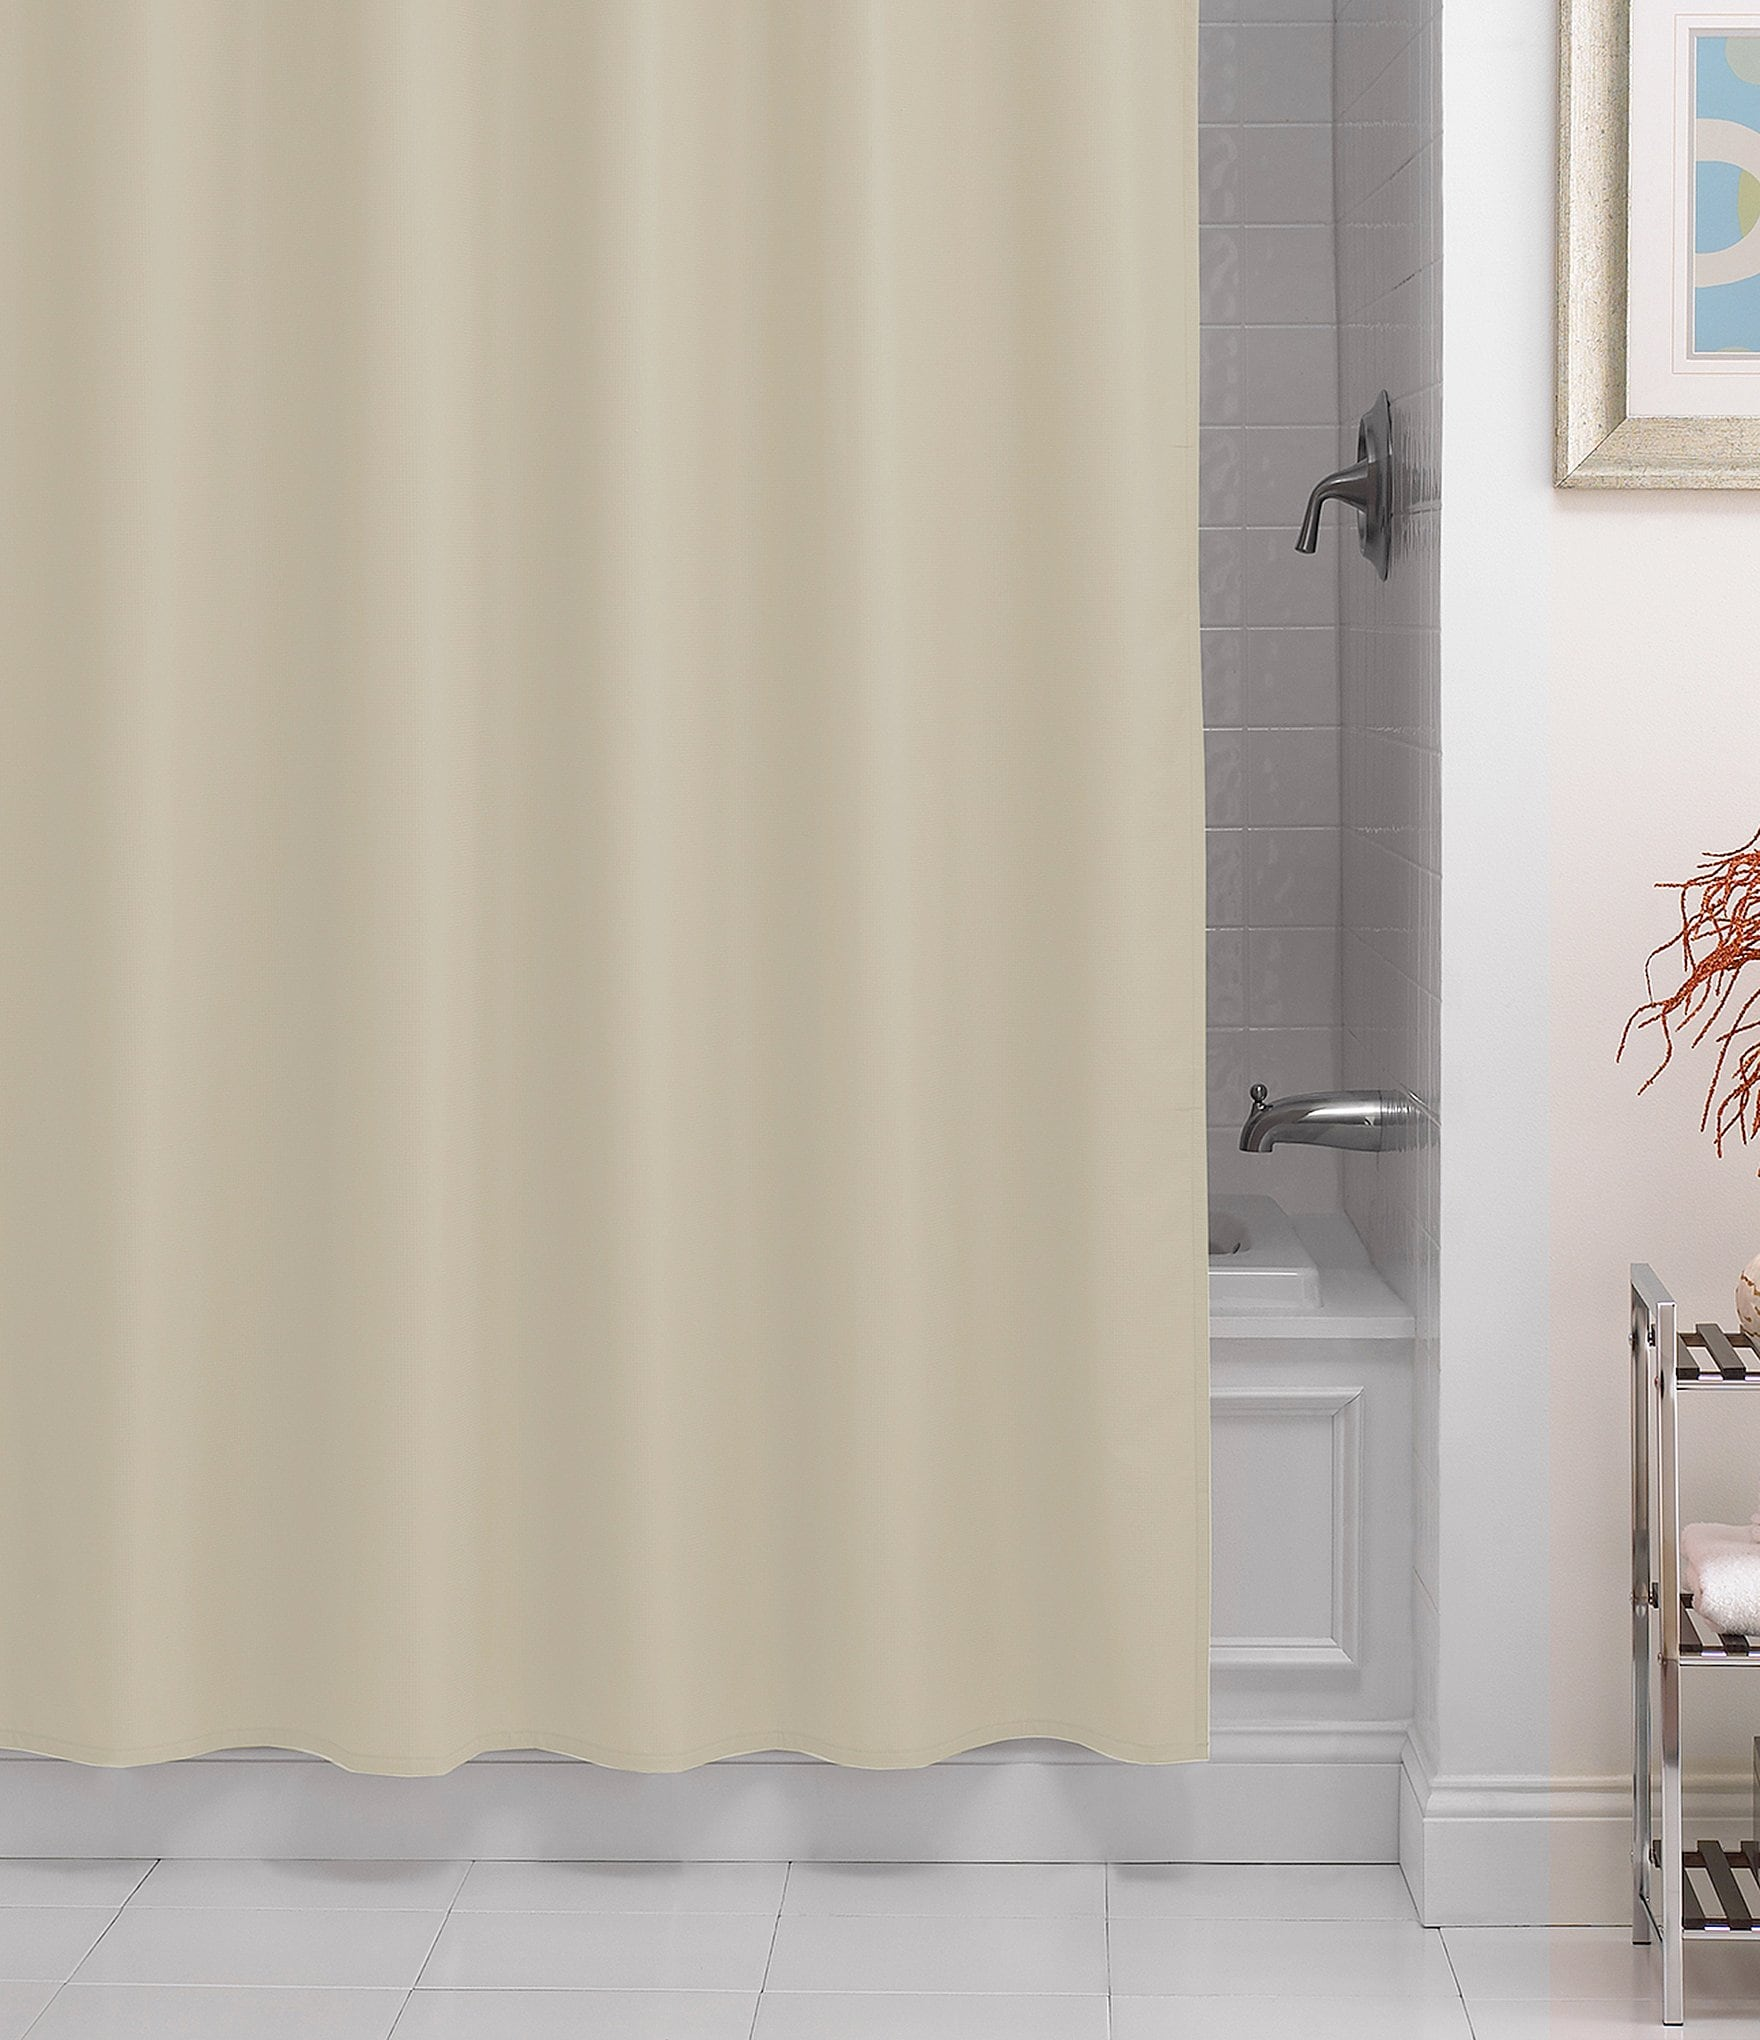 ikea interior curtain walmart size wonderful ireland fabric curtains tag shower of article liner with luxury x full sheer thevol gorgeous